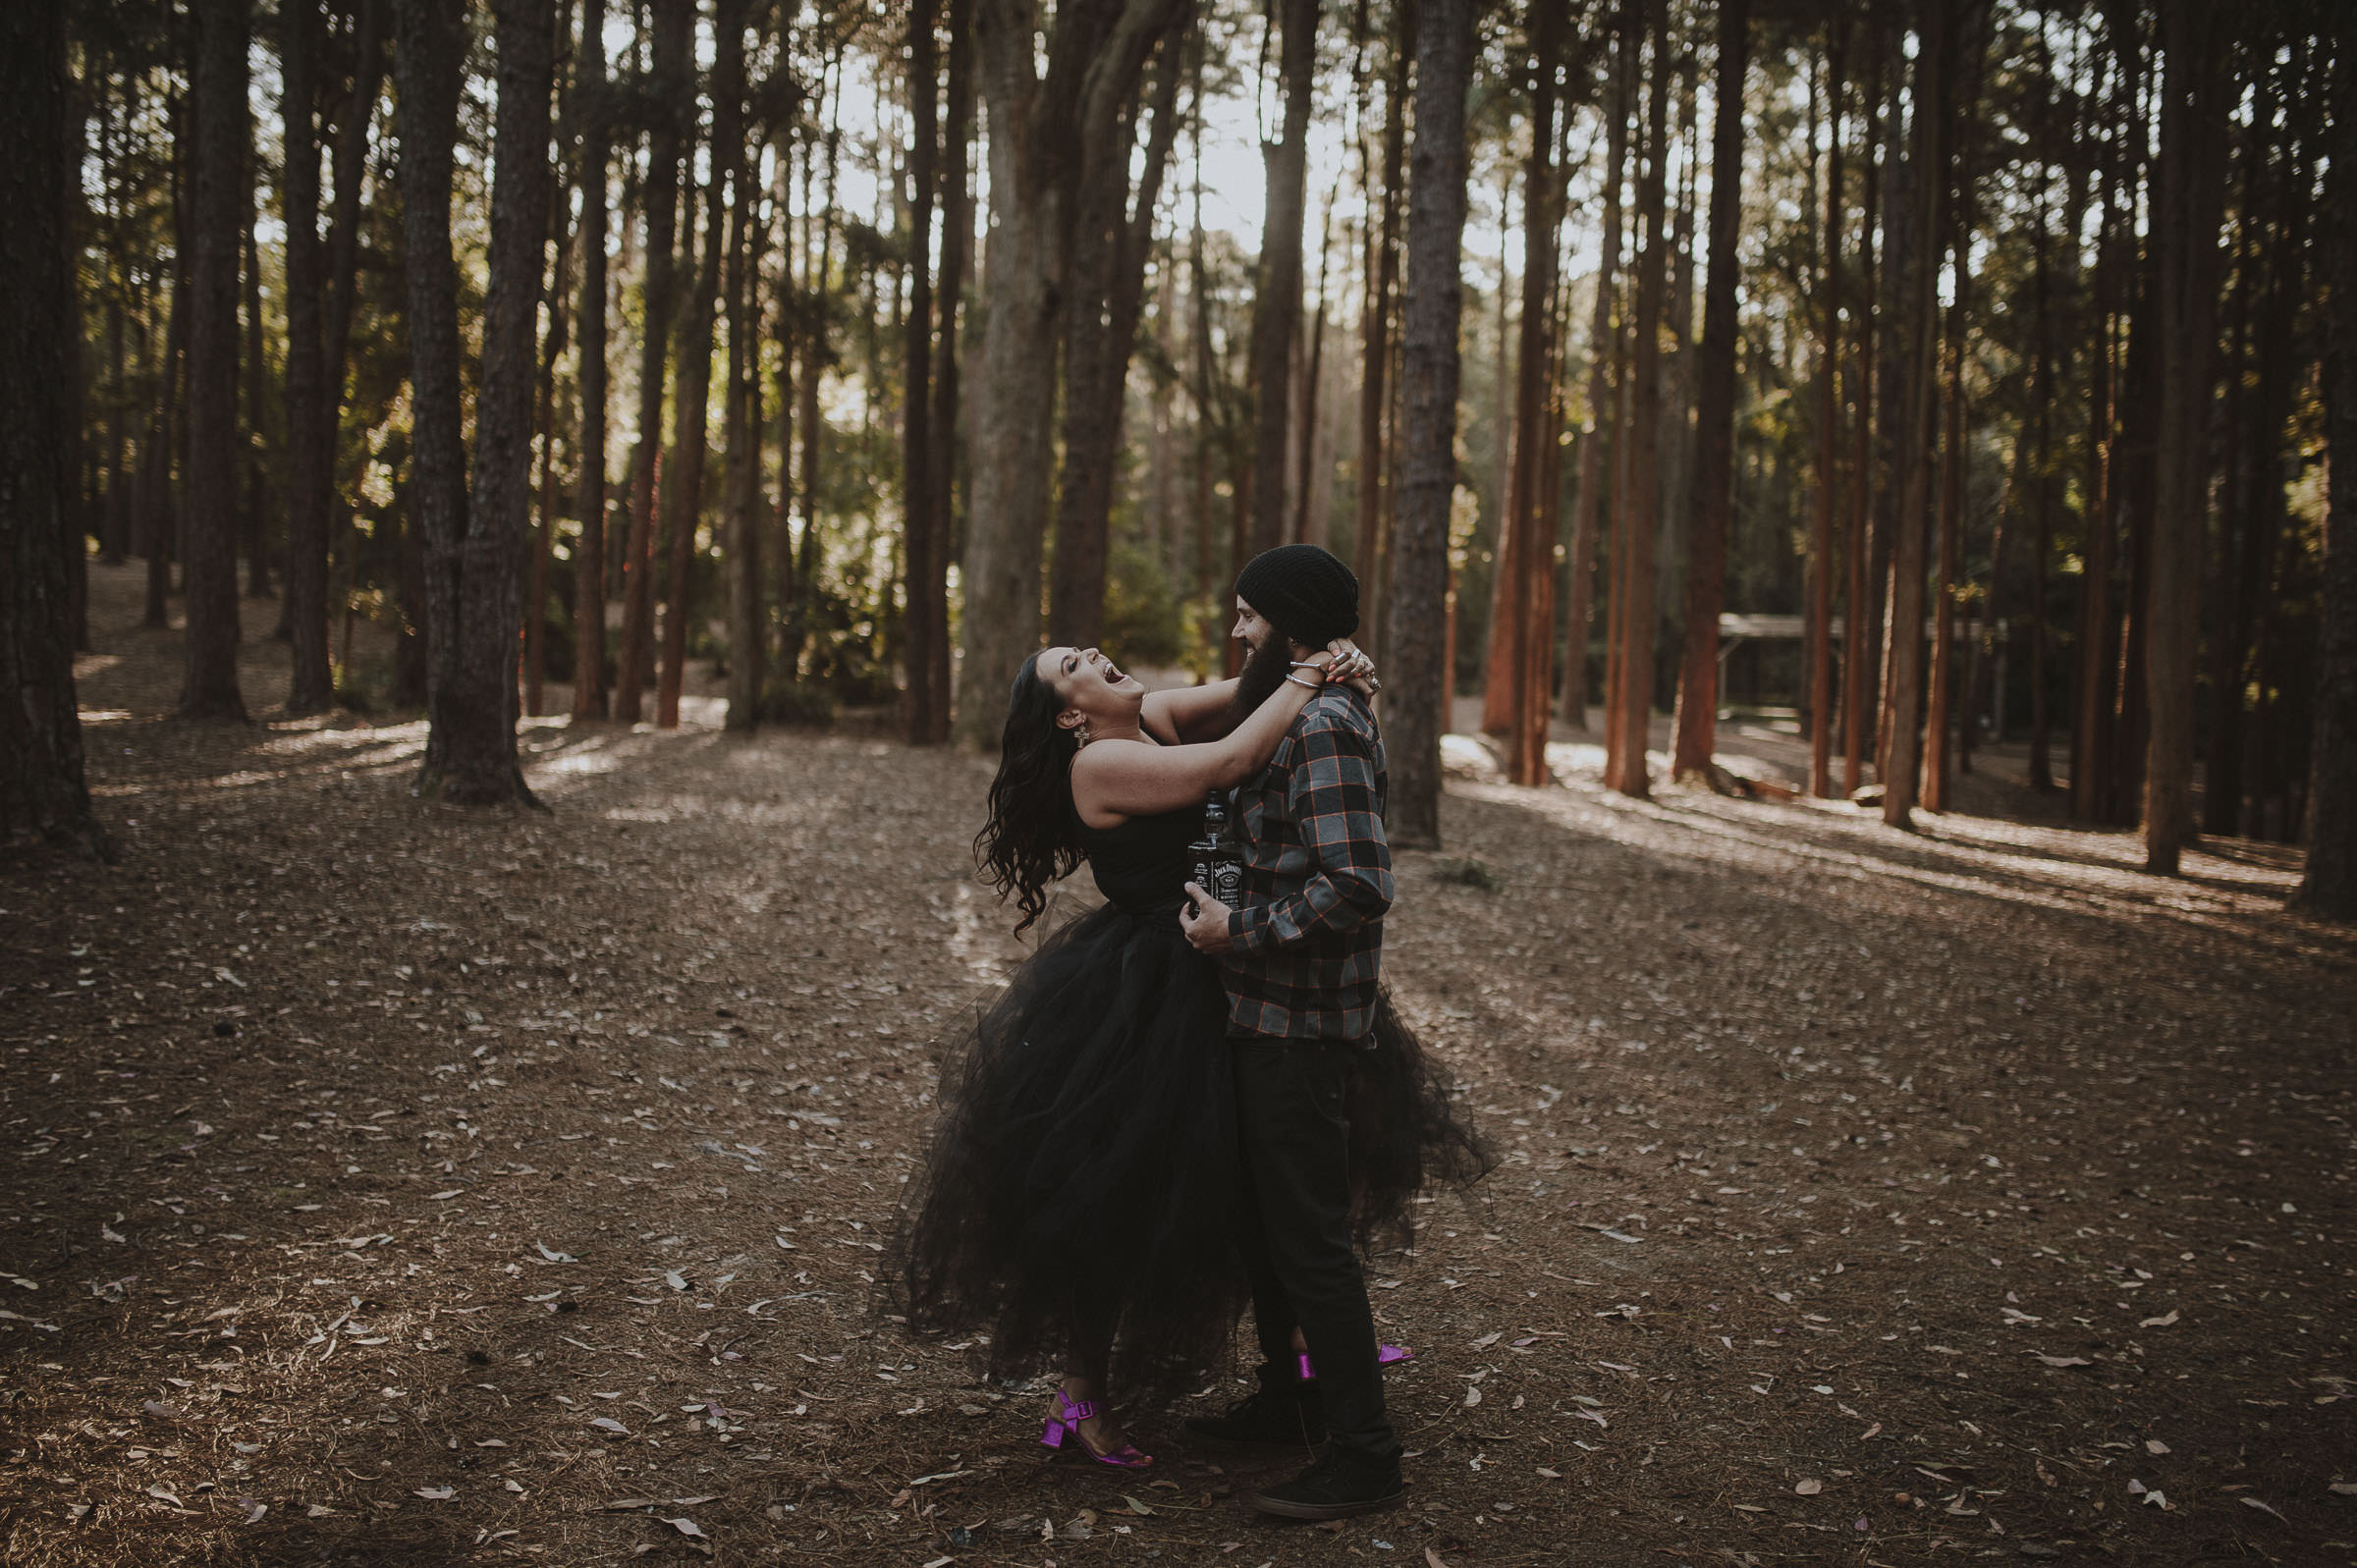 Madeline_Jamie_Watagens_Pine_Forest_Engagement_Shoot_Blog-24.jpg